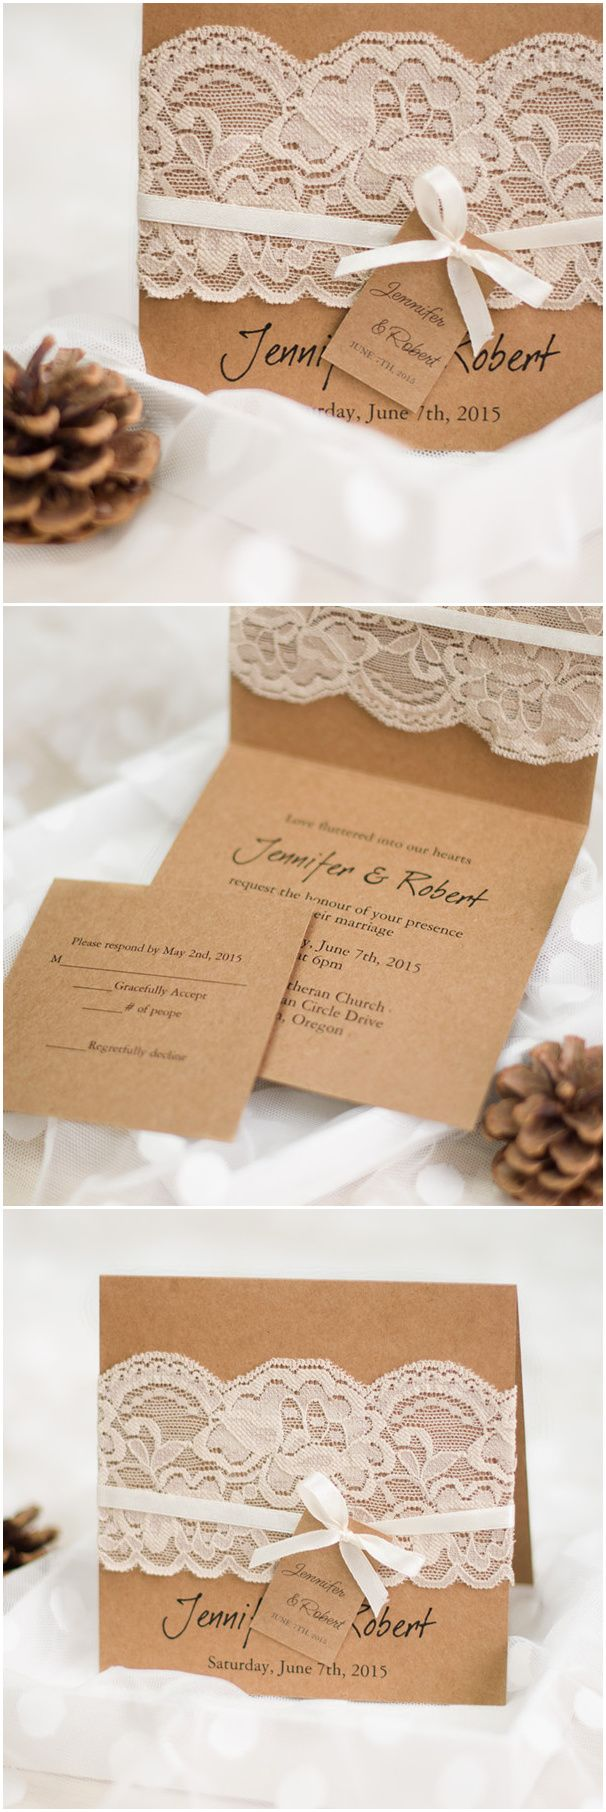 Top rustic wedding invitations to wow your guests burlap